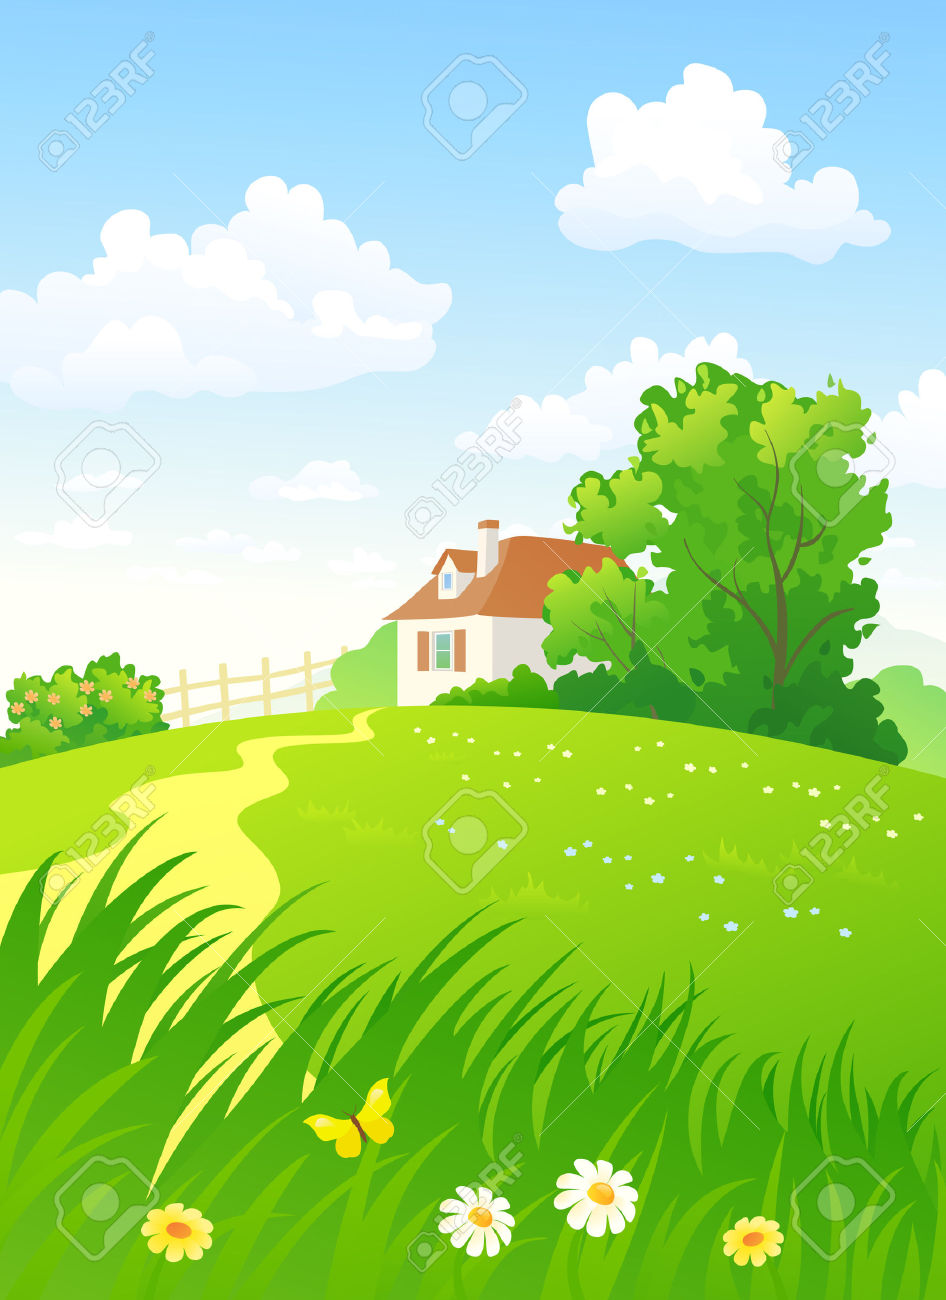 Country side clipart - Clipground